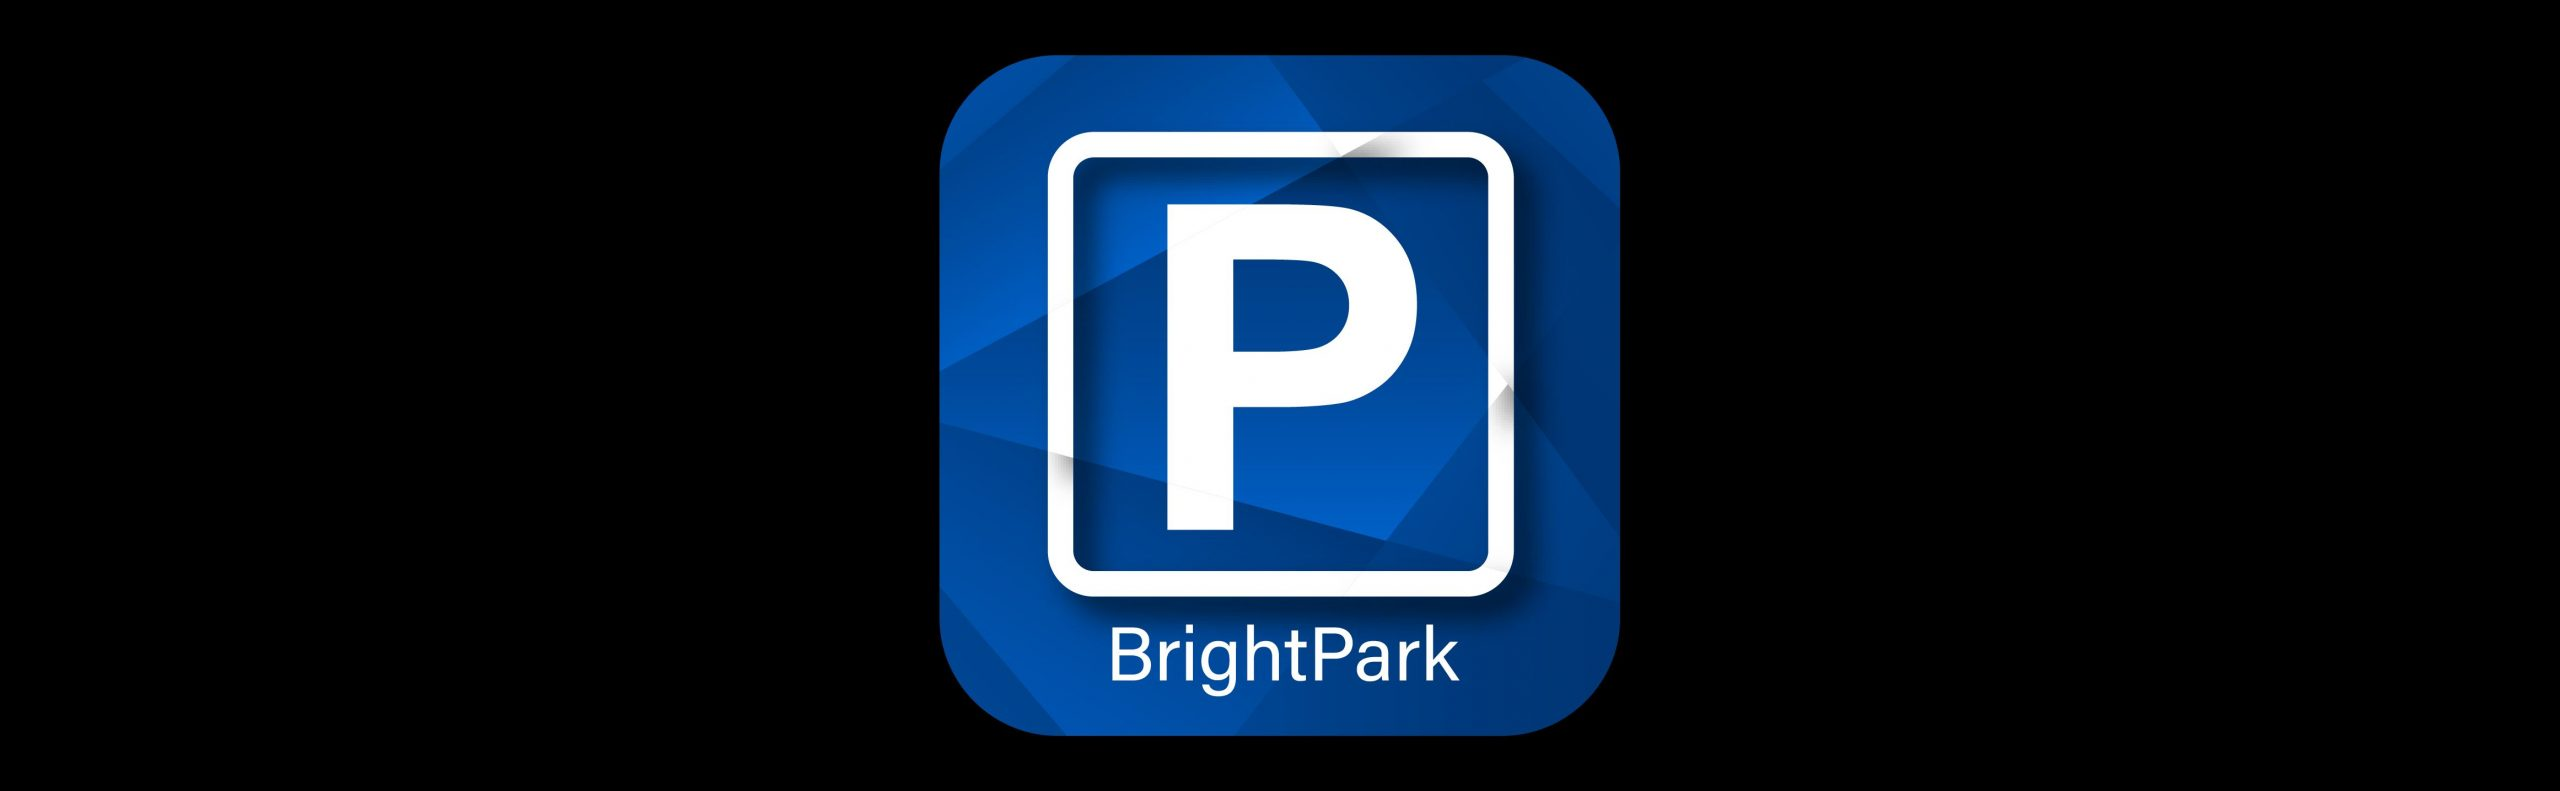 Check out the parking situation at Turku Tuomiokirkontori – BrightPark